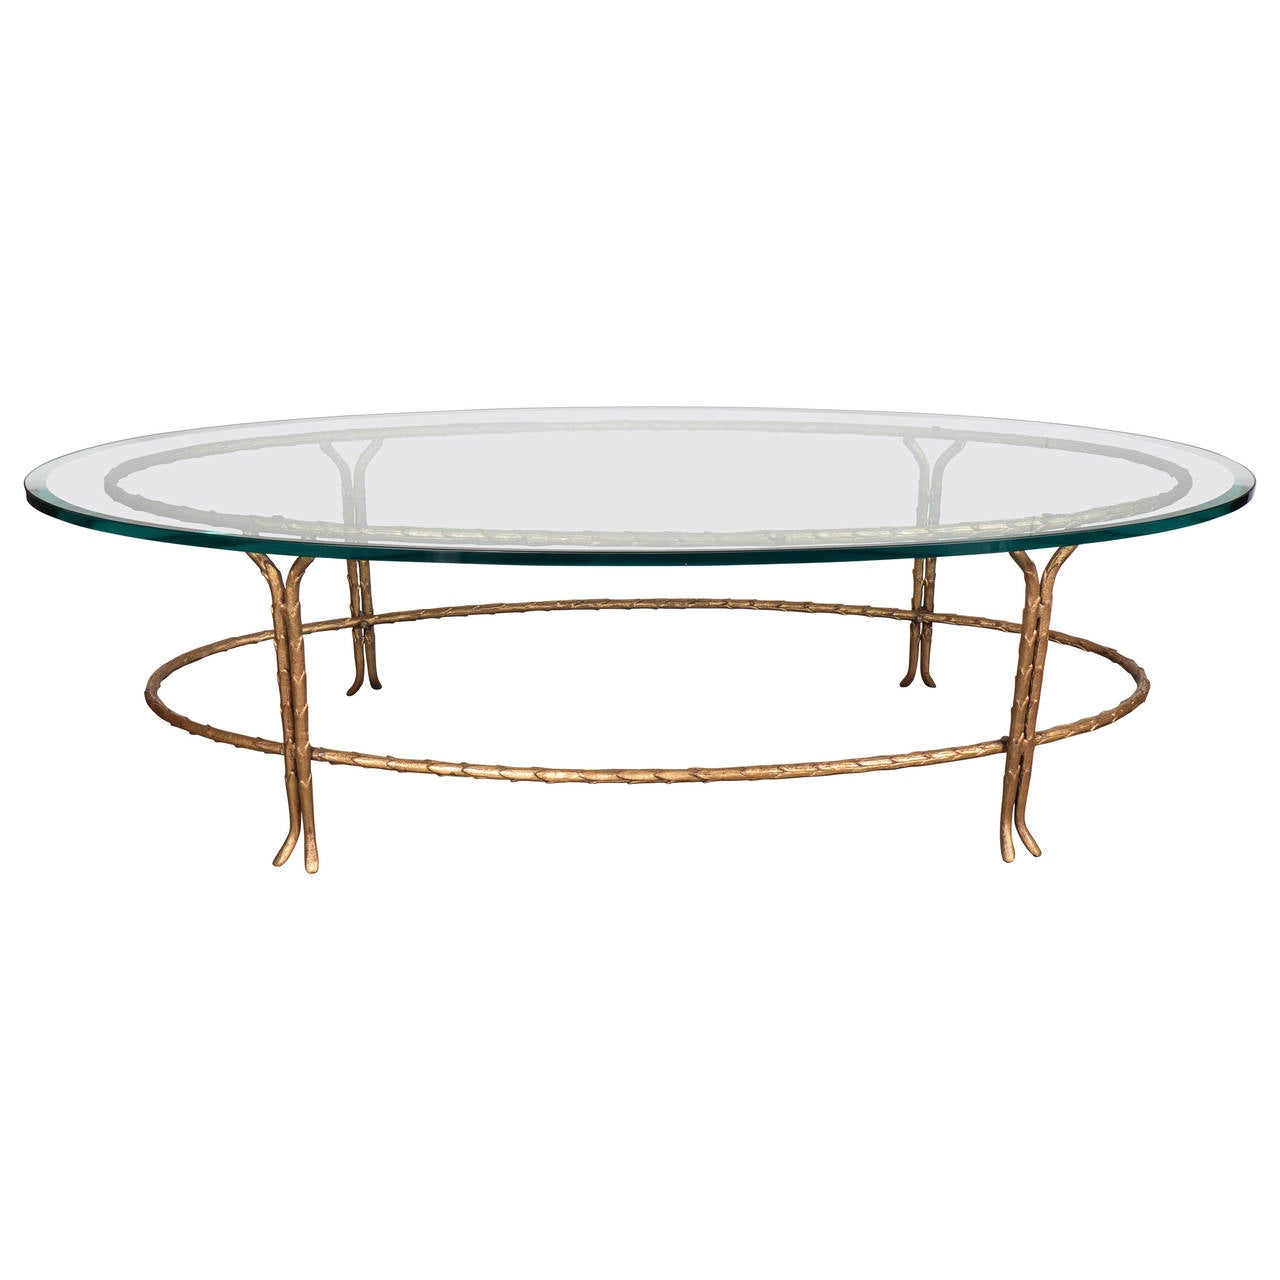 Elegant bagues gilt bronze oval cocktail table with for Oval glass coffee table